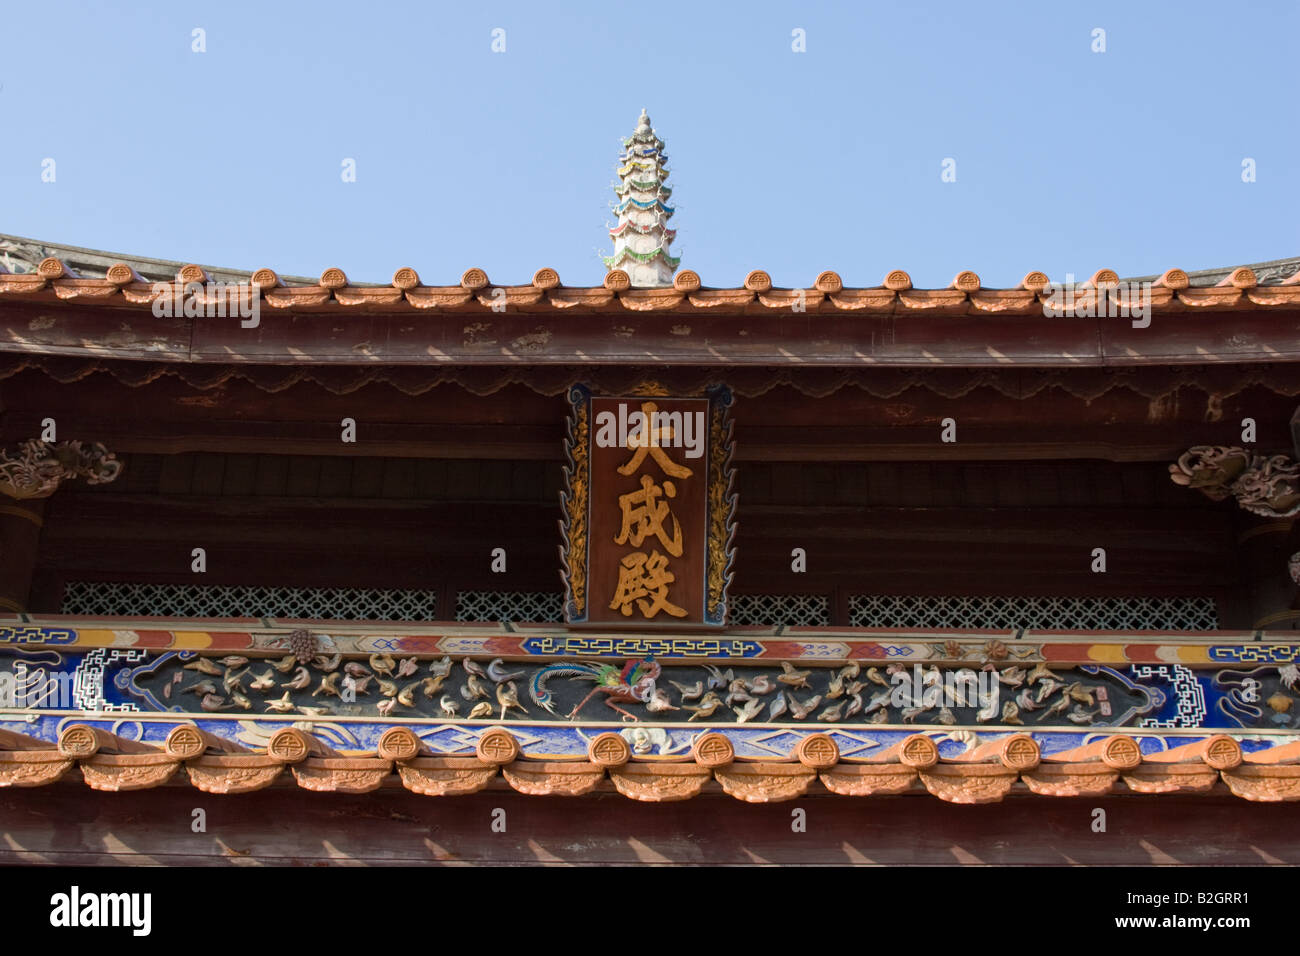 Rooftop of Confucius temple Chinese scholar sage Changhua Taiwan ROC Republic of China - Stock Image